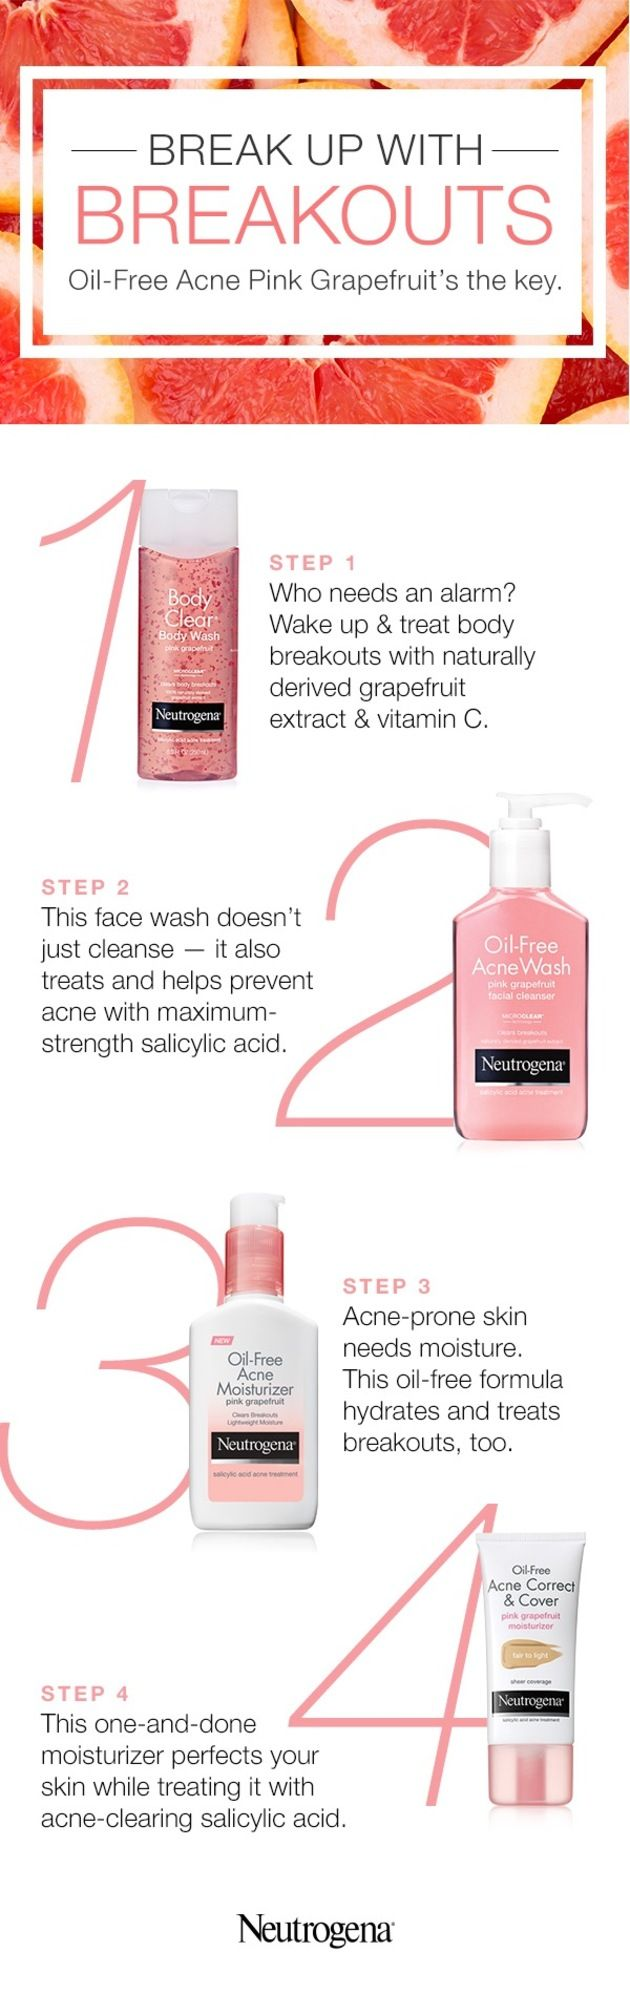 Homemade Acne Remedies - How to Heal Your Acne Scabs - Stop Acne Scarring ** More details can be found by clicking on the image. #gluta